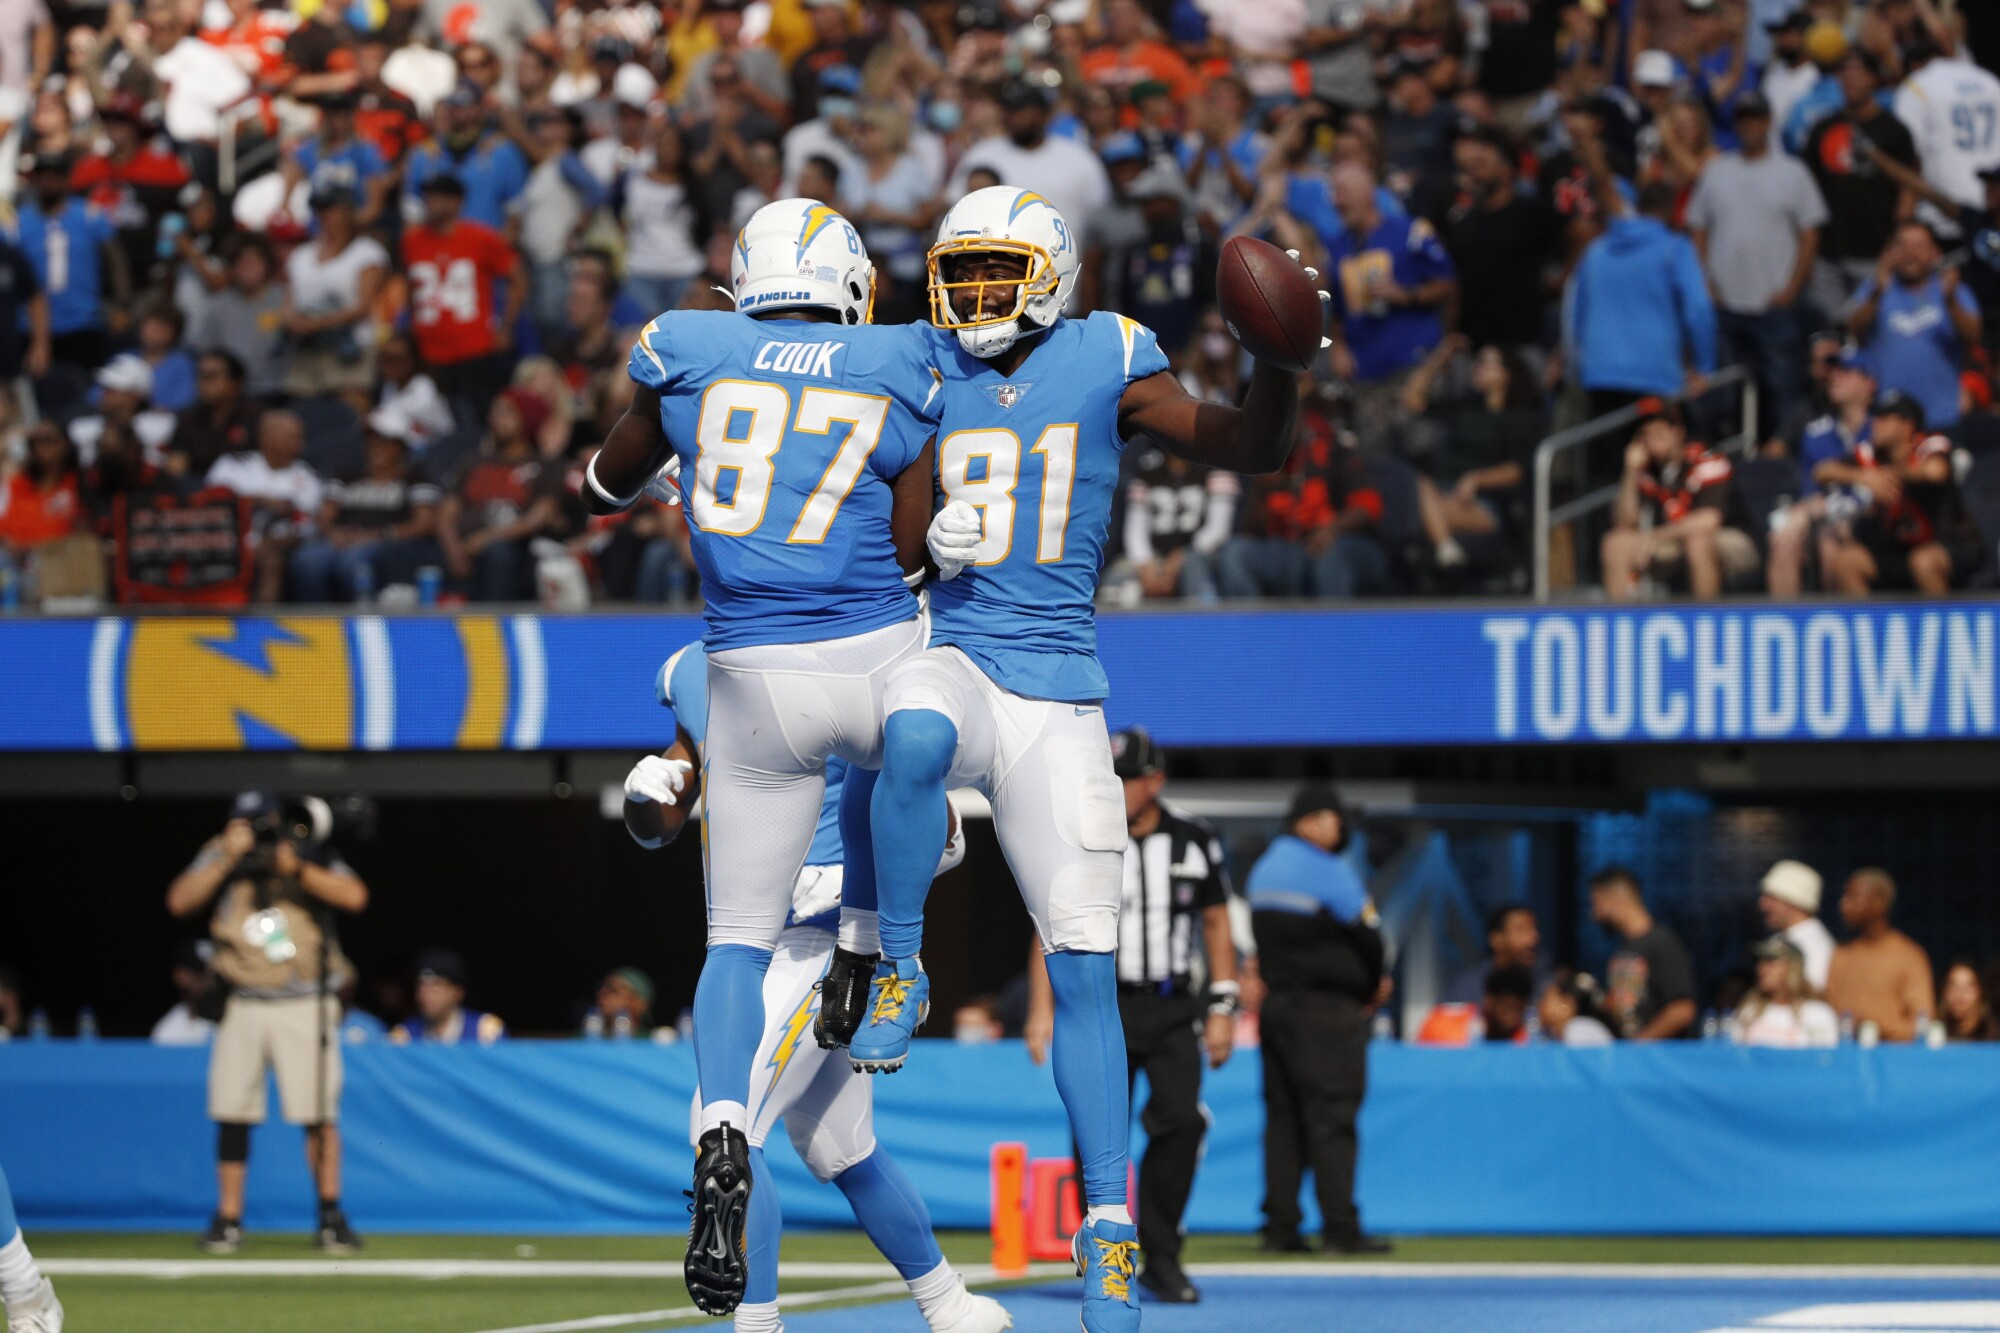 Chargers wide receiver Mike Williams celebrates with tight end Jared Cook after scoring a fourth-quarter touchdown.